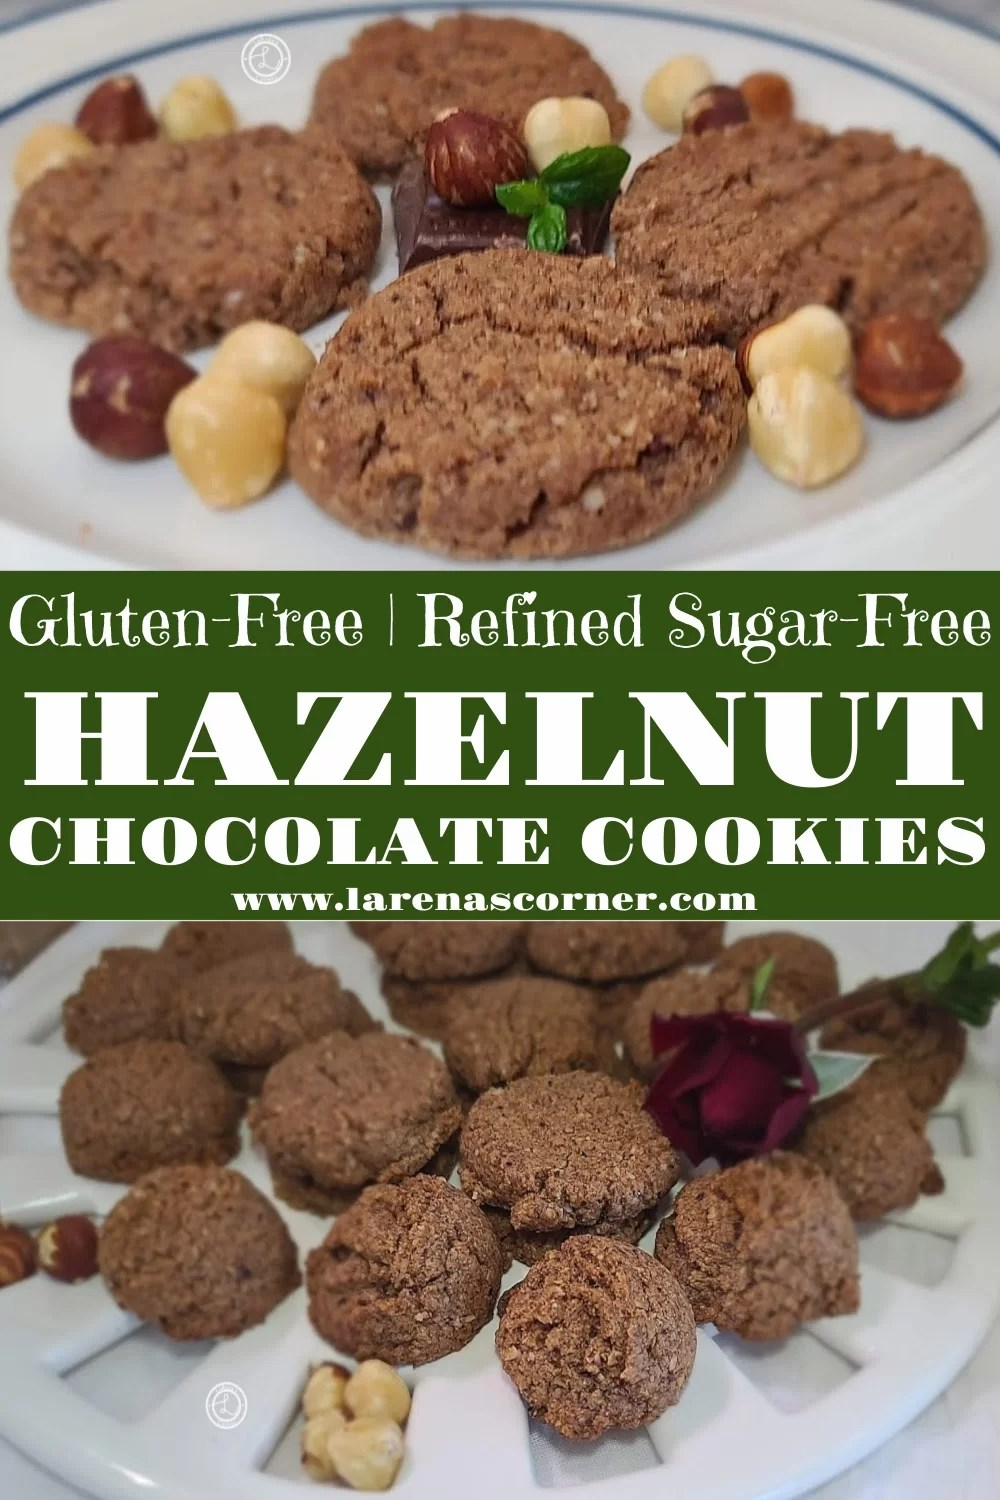 Two pictures of Gluten-Free Chocolate Hazelnut Cookies